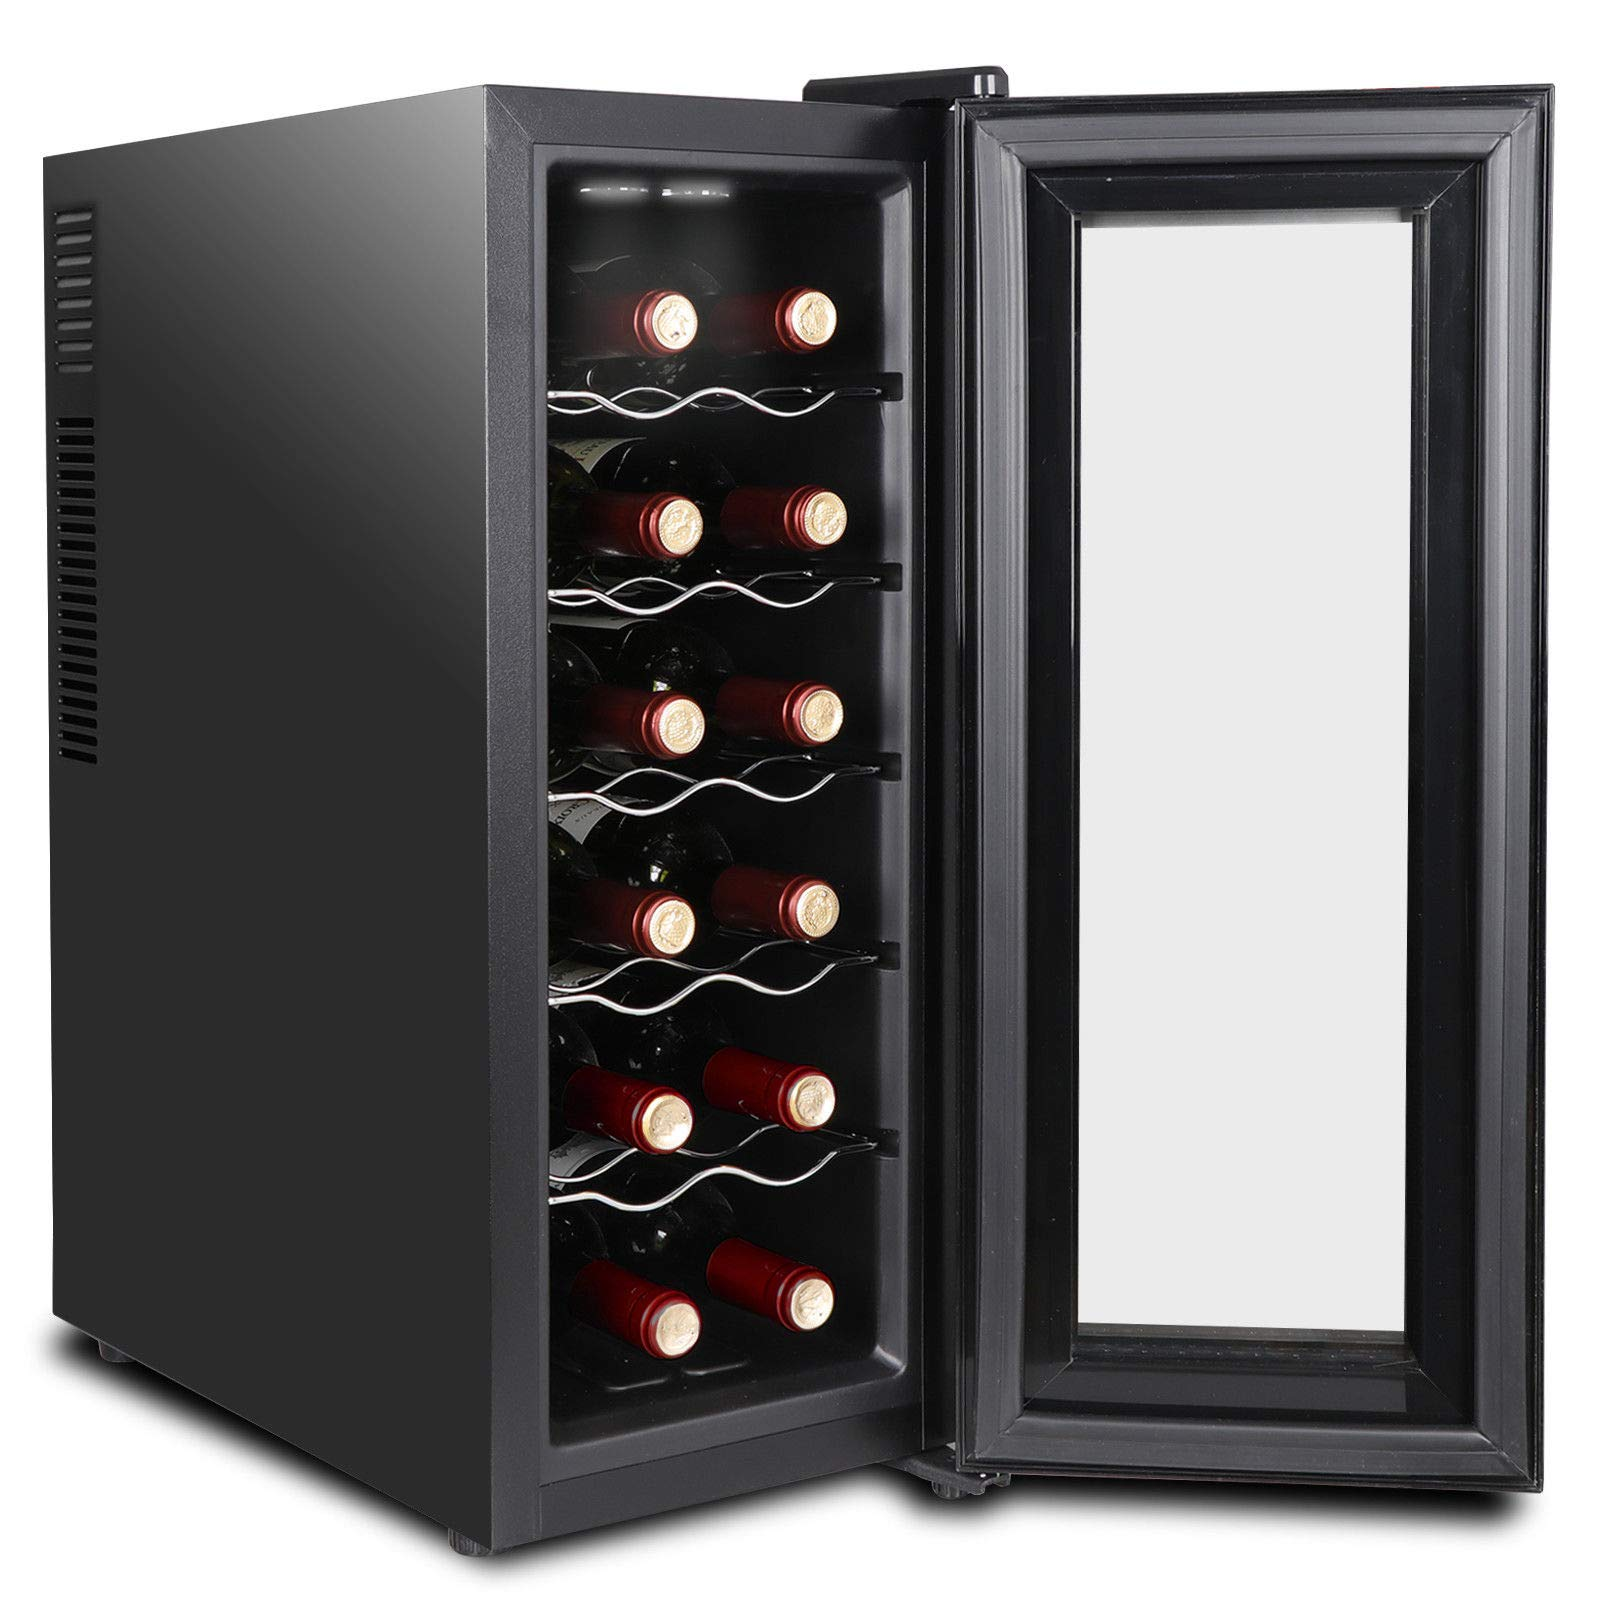 Cypress Shop Wine Cooler Fridge Refrigerator Chilling Accurate Temperature Control 12 Wine Bottles Storing Holders Freestanding Quiet Operation Air Tight Seal Closure Home Furniture